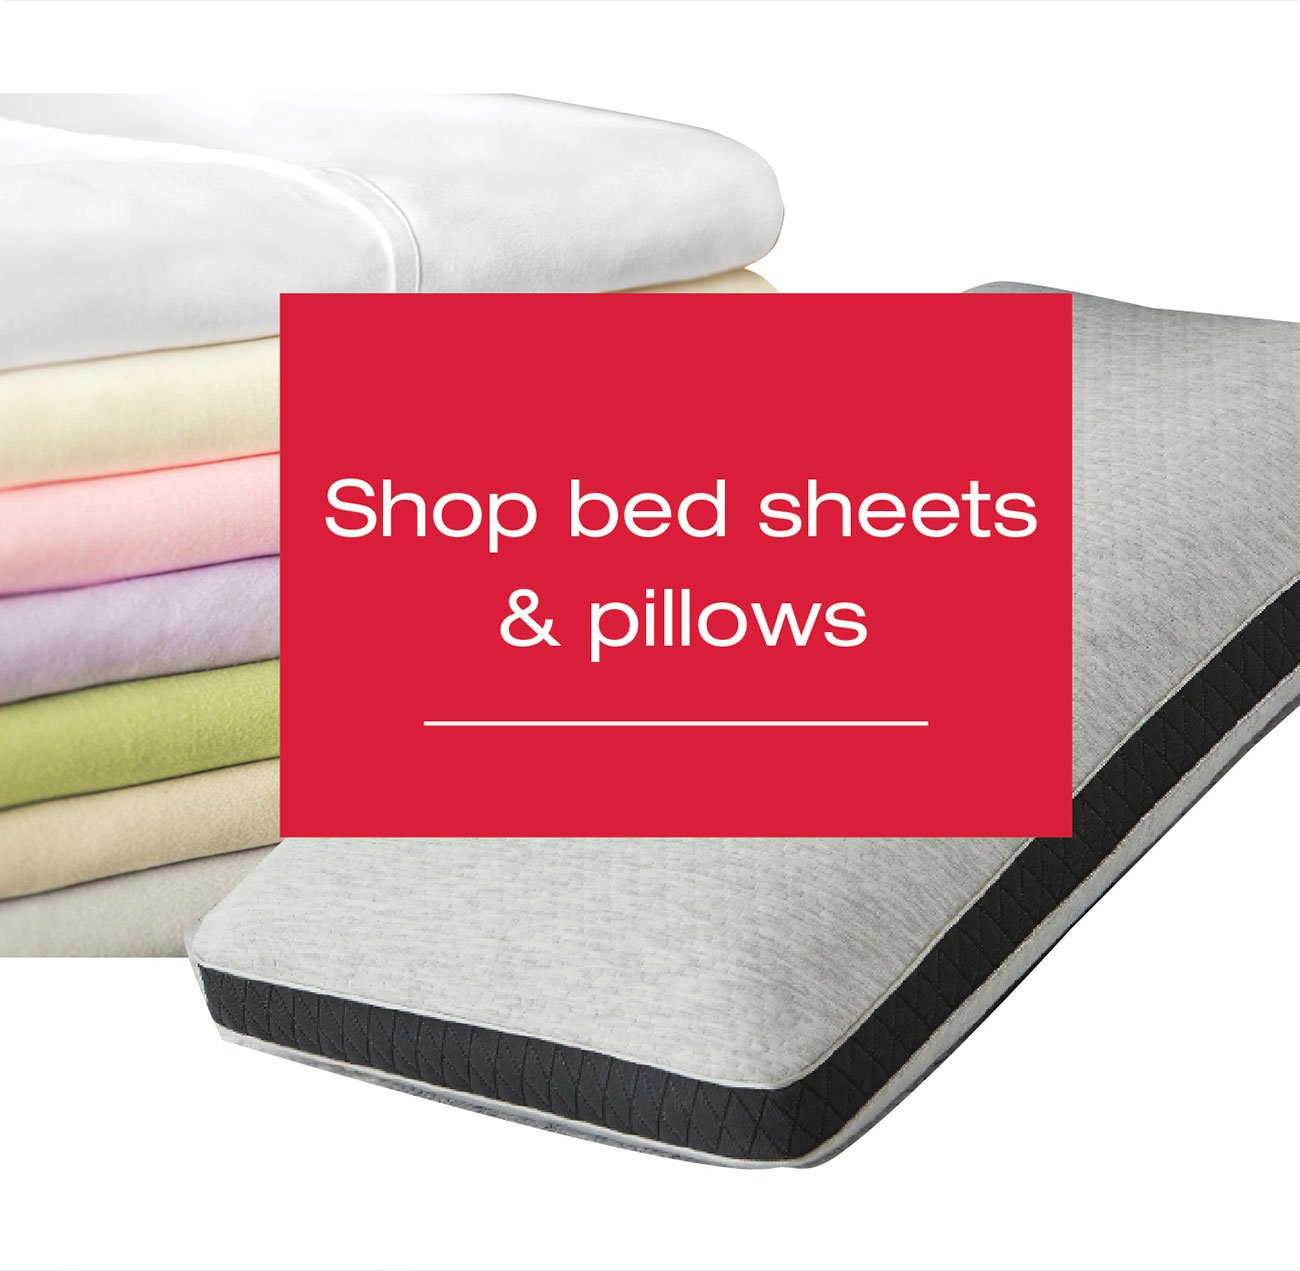 Shop-bed-sheets-and-pillows